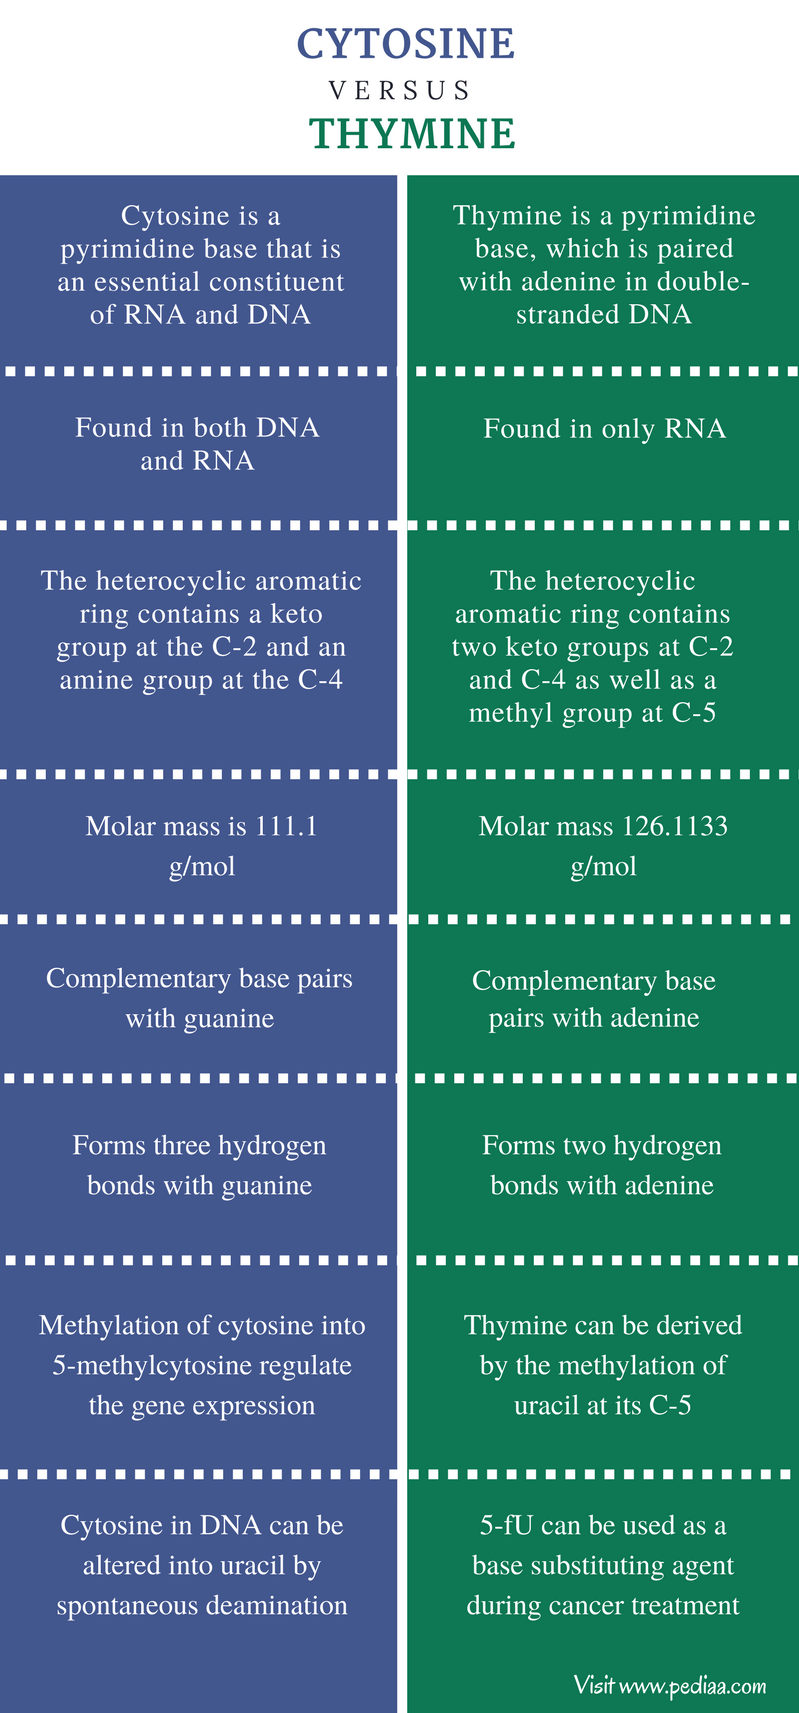 Difference Between Cytosine and Thymine - Comparison Summary